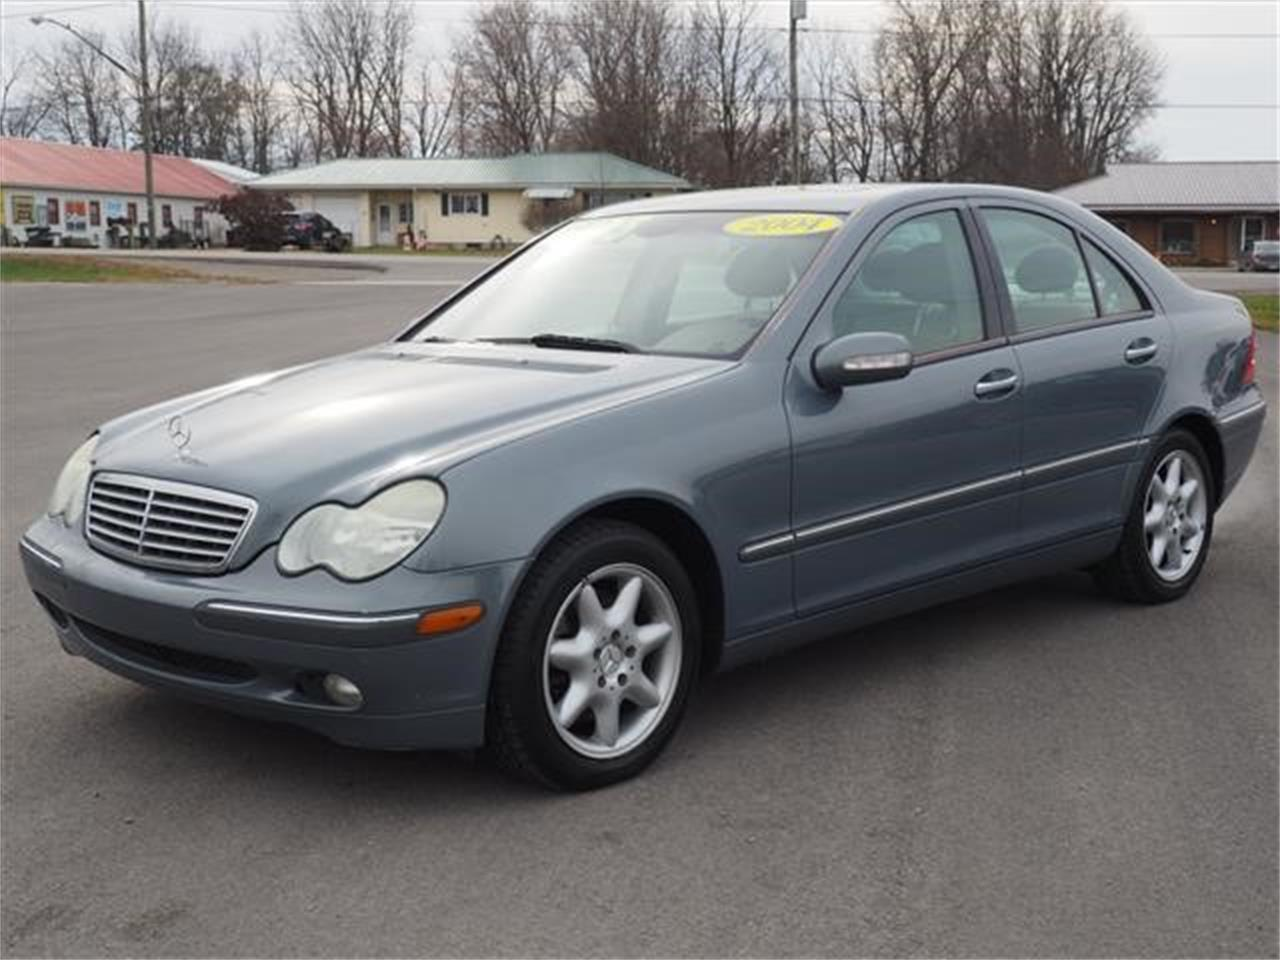 2004 Mercedes-Benz C240 (CC-1382410) for sale in Marysville, Ohio